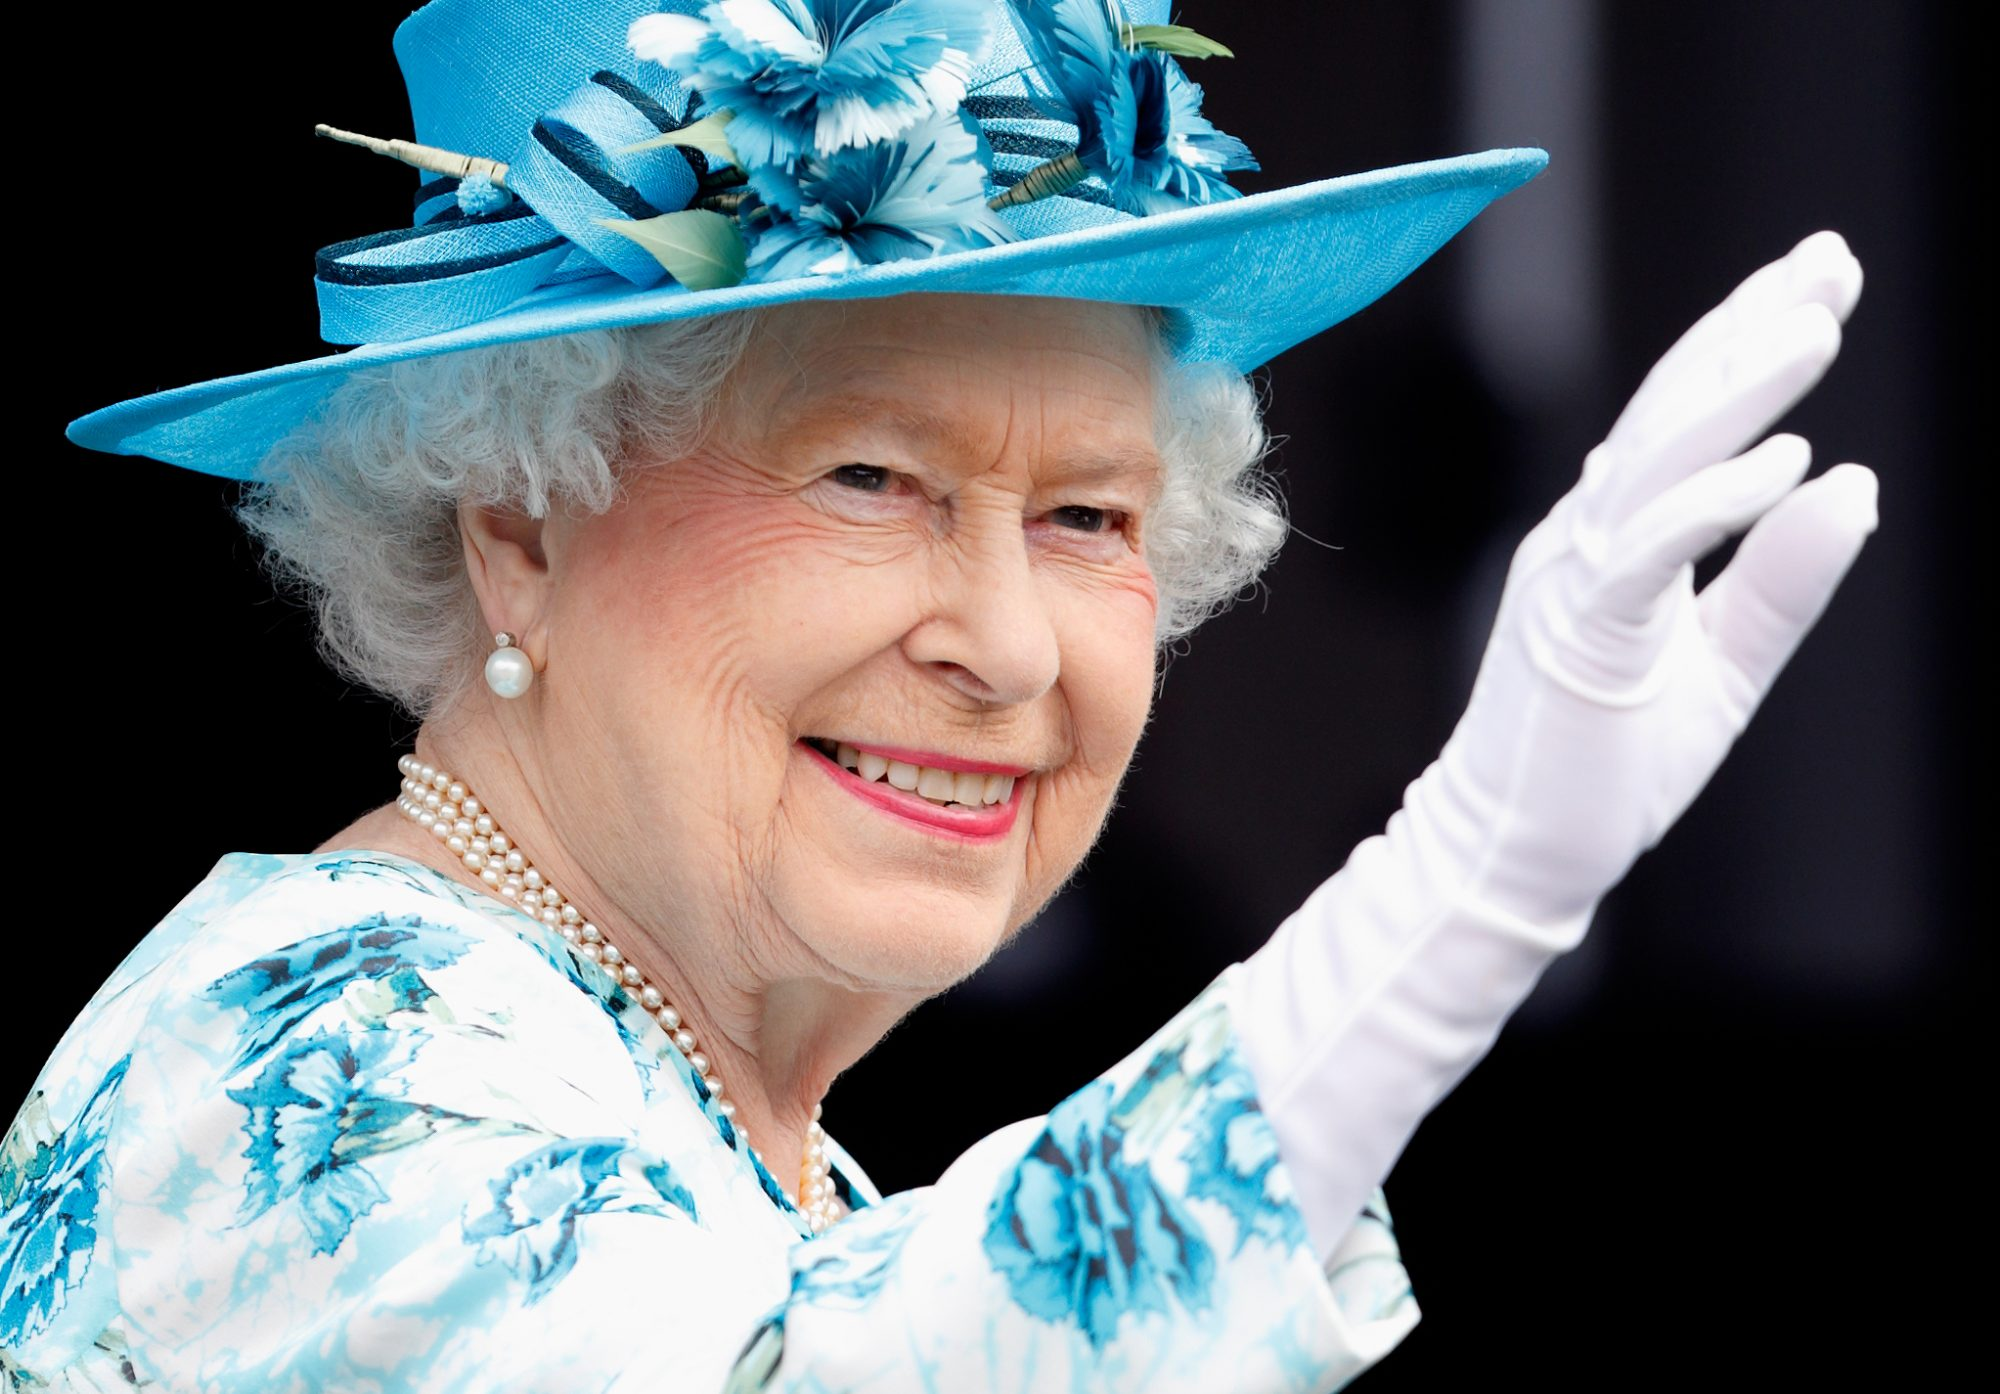 7 Things You Might Not Know About Queen Elizabeth II on Her 91st Birthday